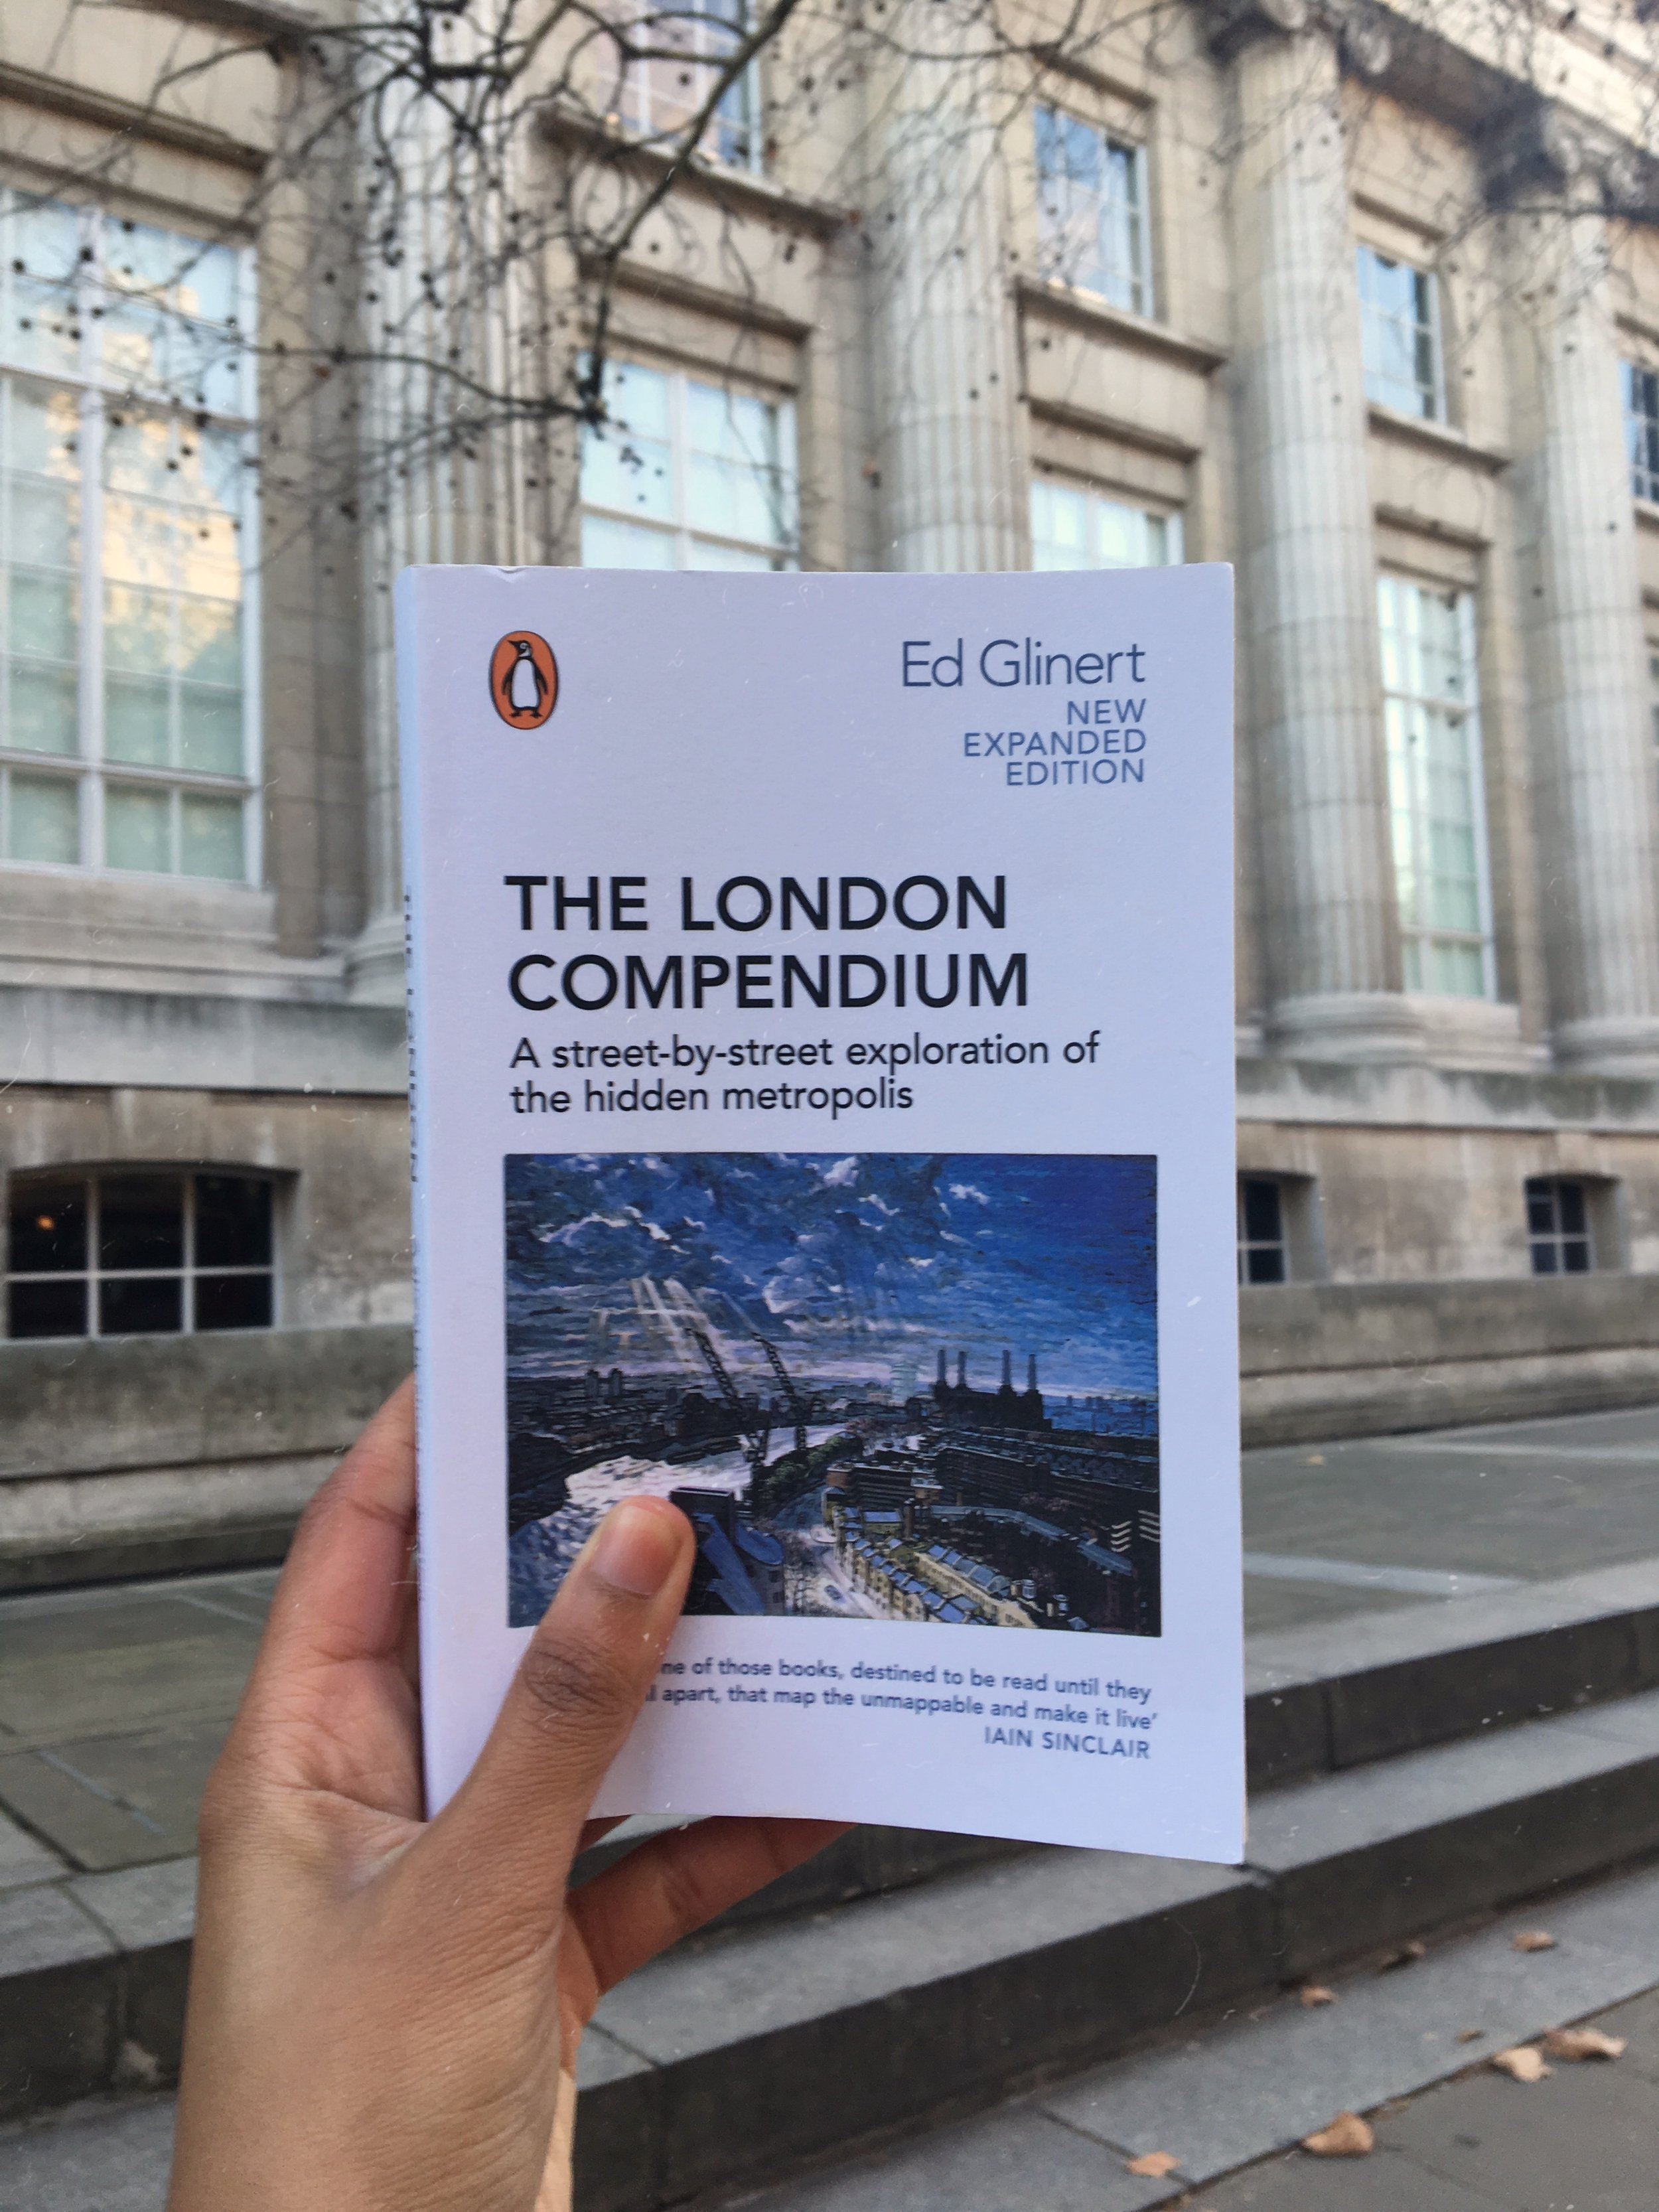 'The London Compendium' outside The British Museum.